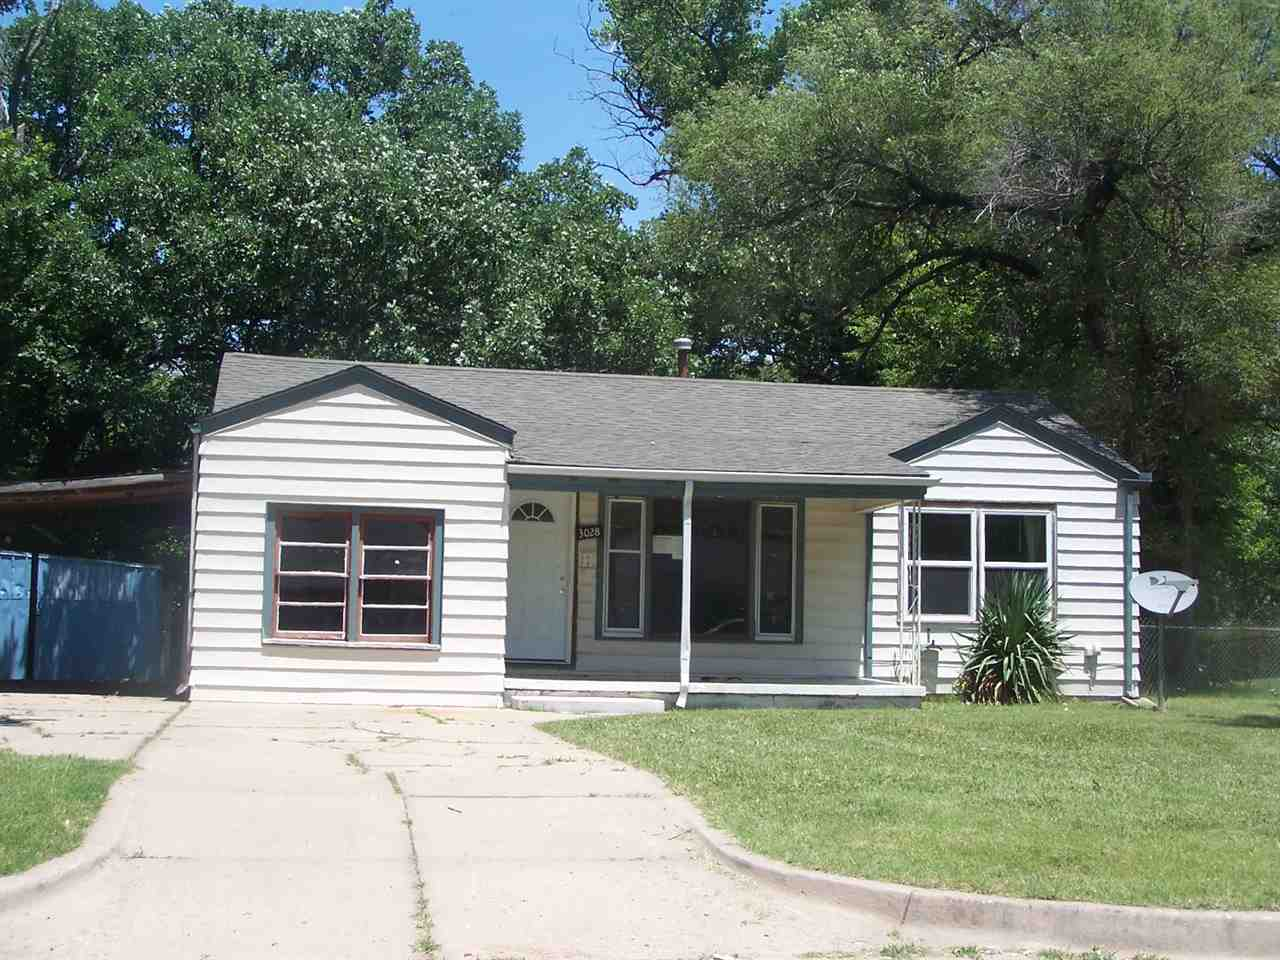 This 3 bedroom, 1 bath, ranch home sits on a good sized fenced lot with a shed. There is a carport a